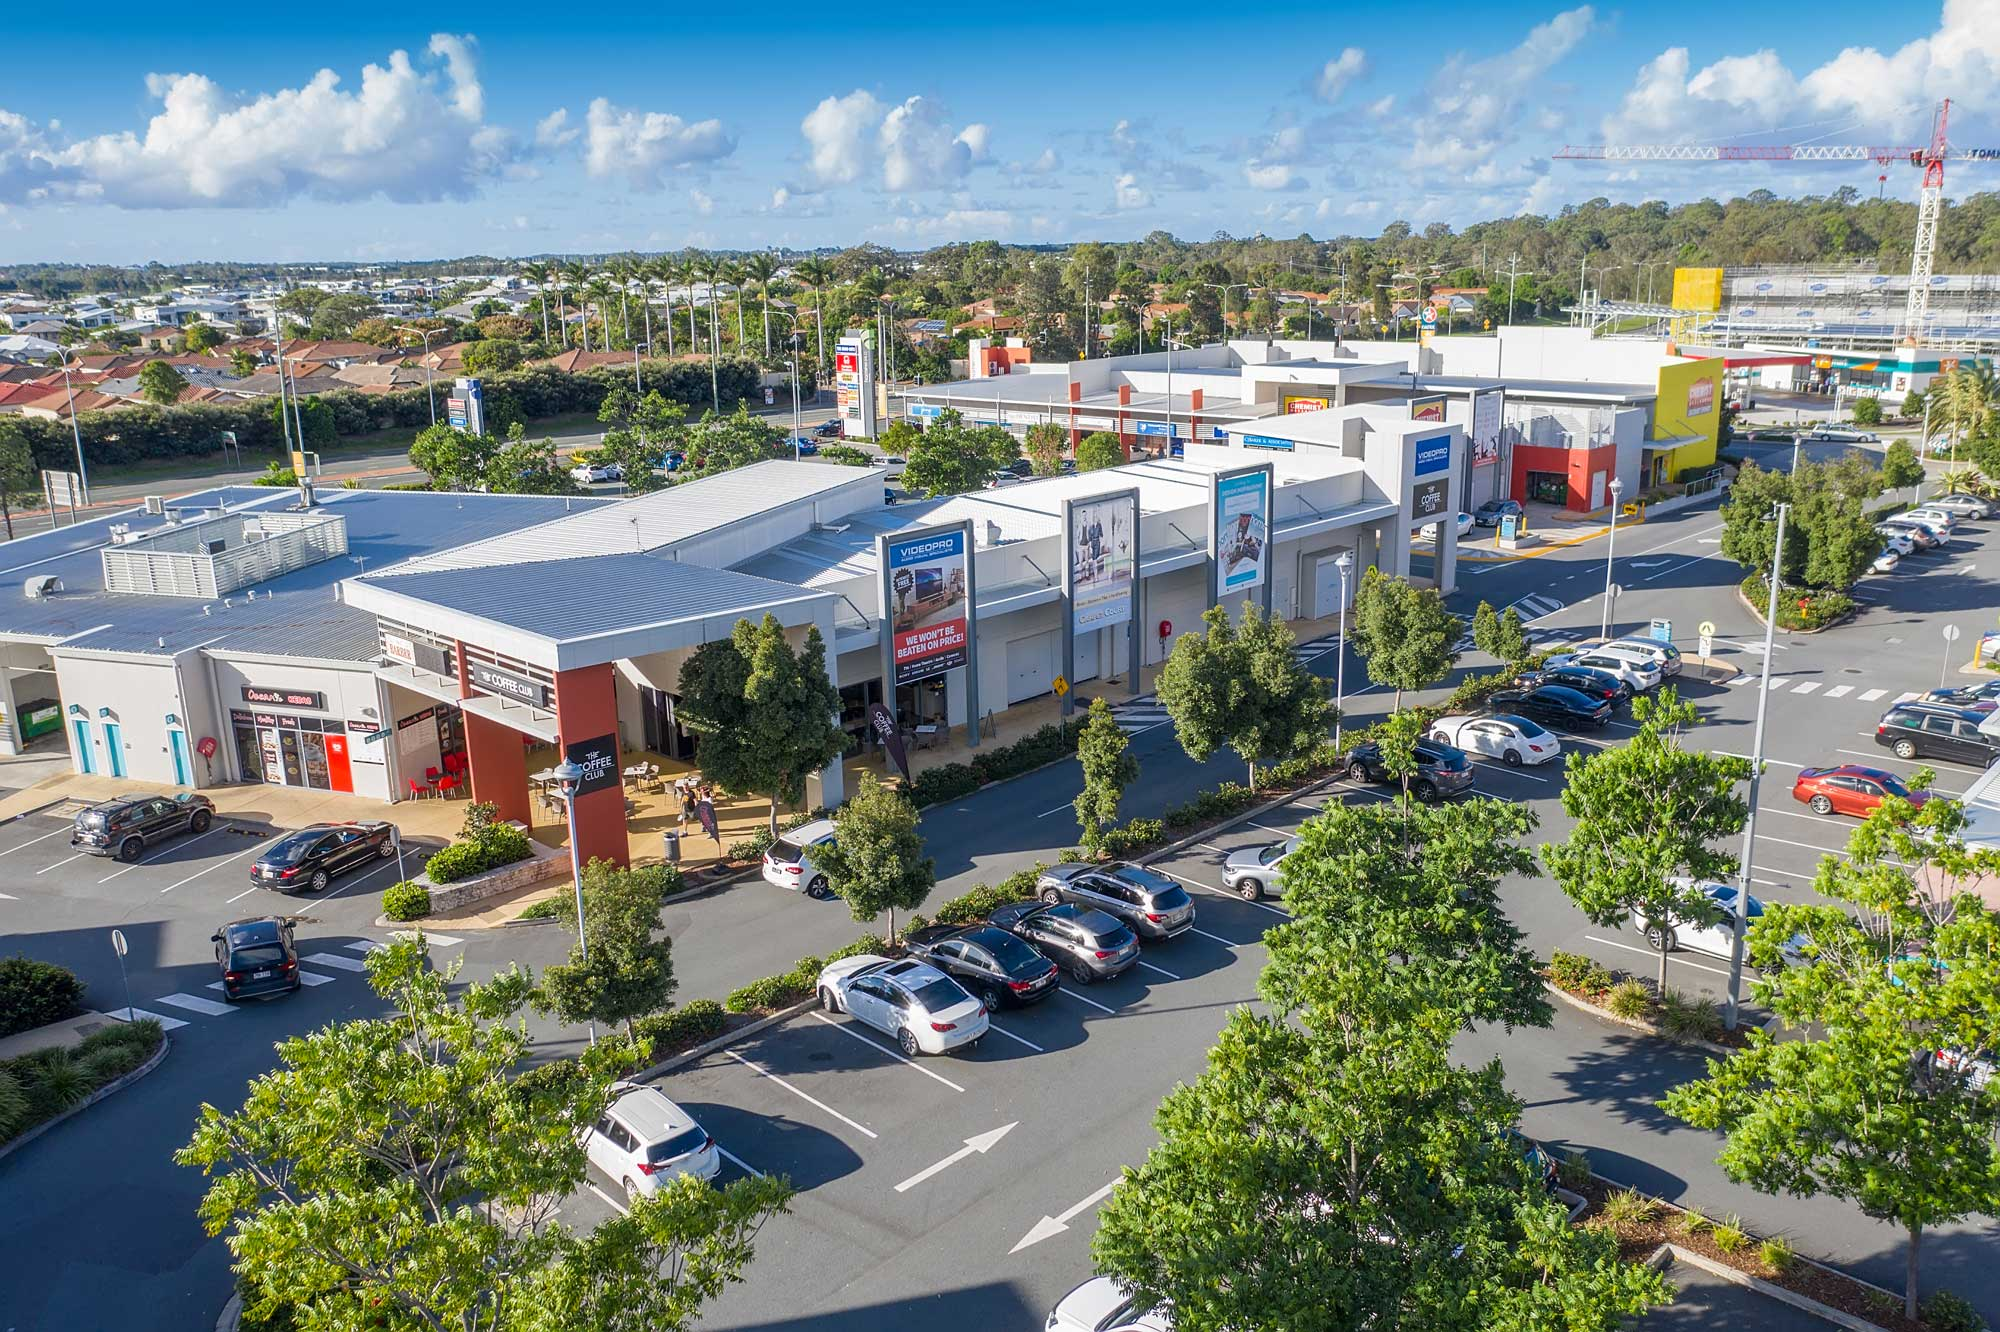 Fly through drone video at the Homeworld Helensvale Shopping Centre